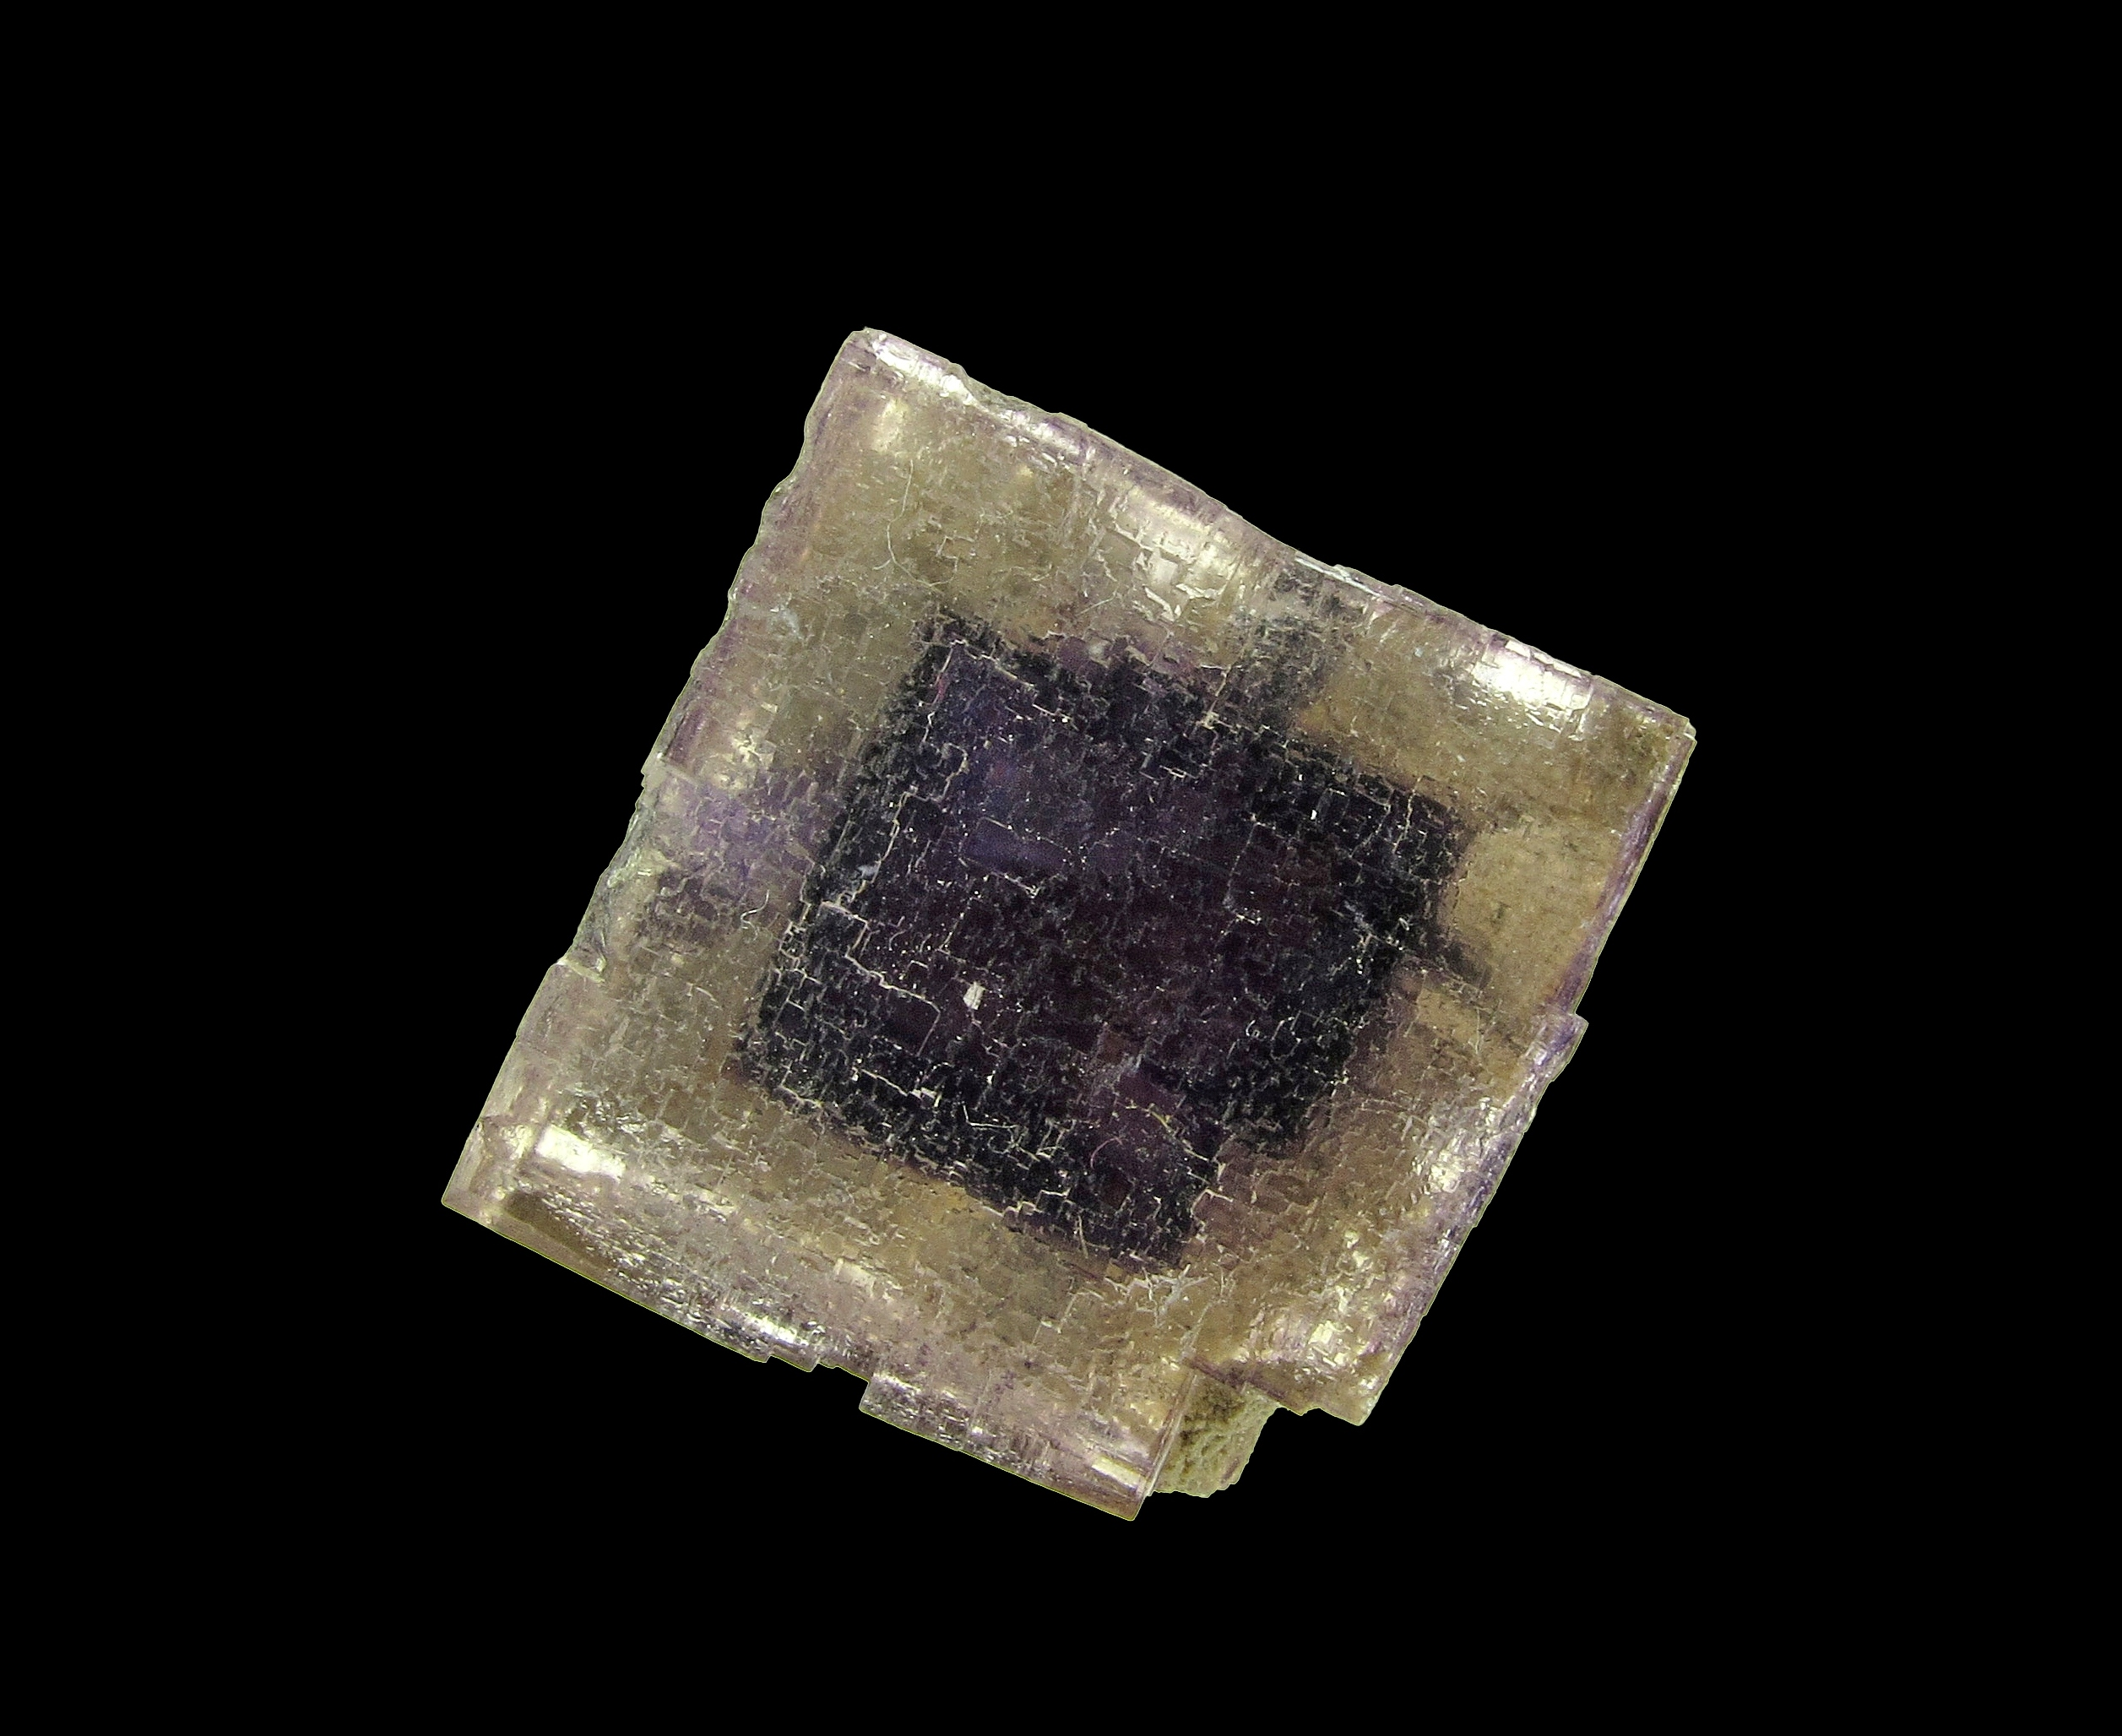 The Auglaize Quarry Ohio remowned zoned Fluorites robust large crystal